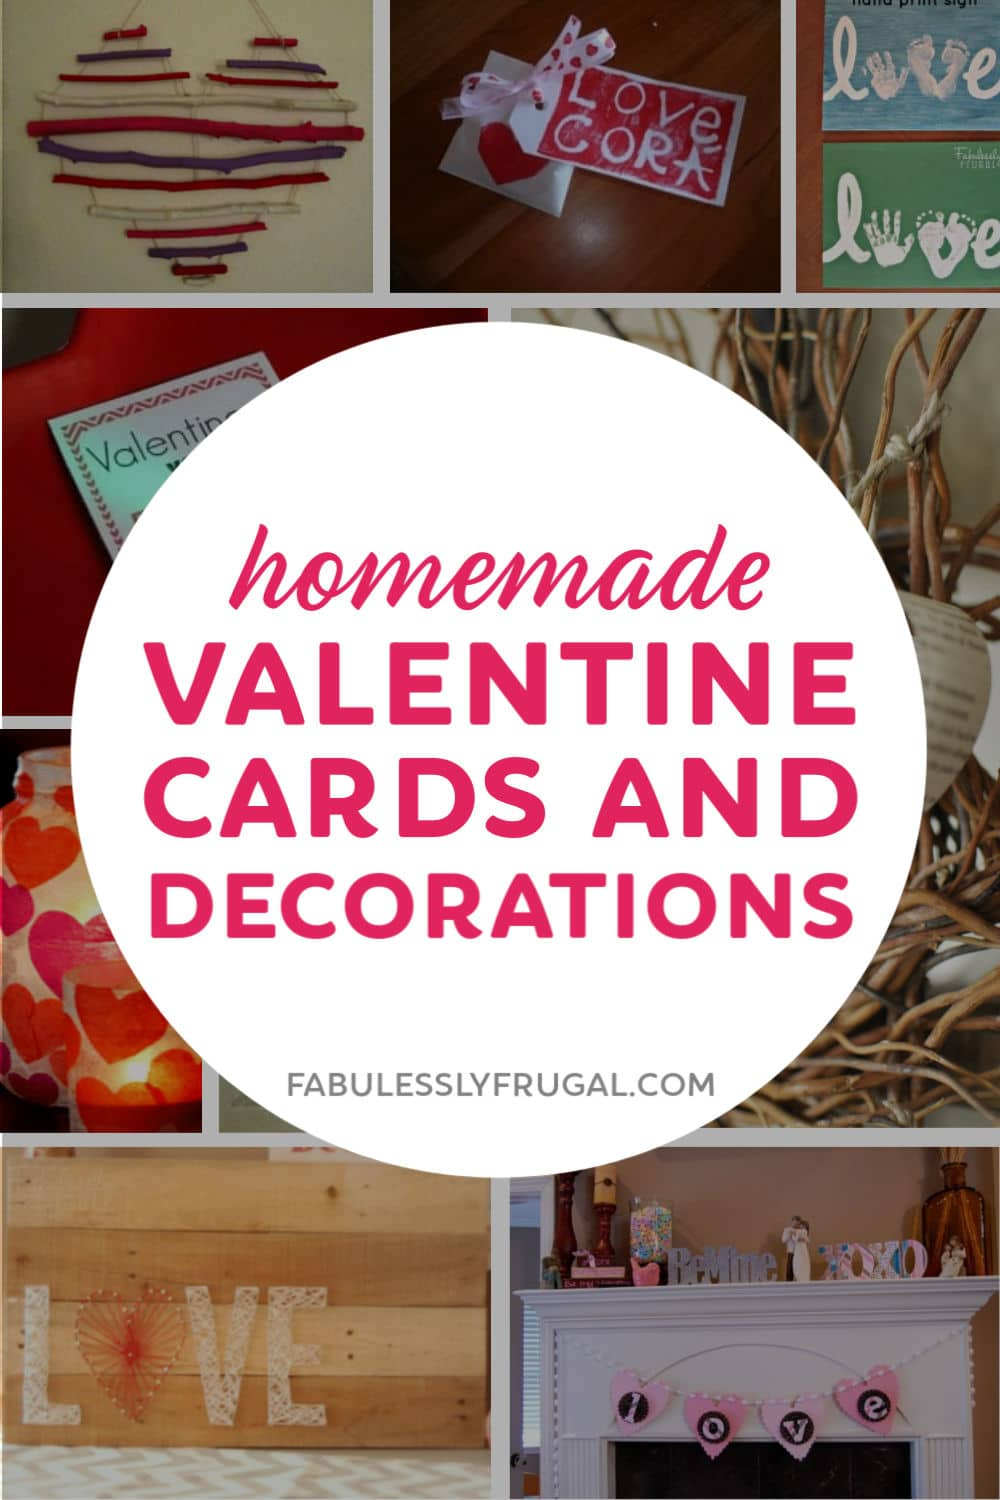 Homemade valentine cards and decorations